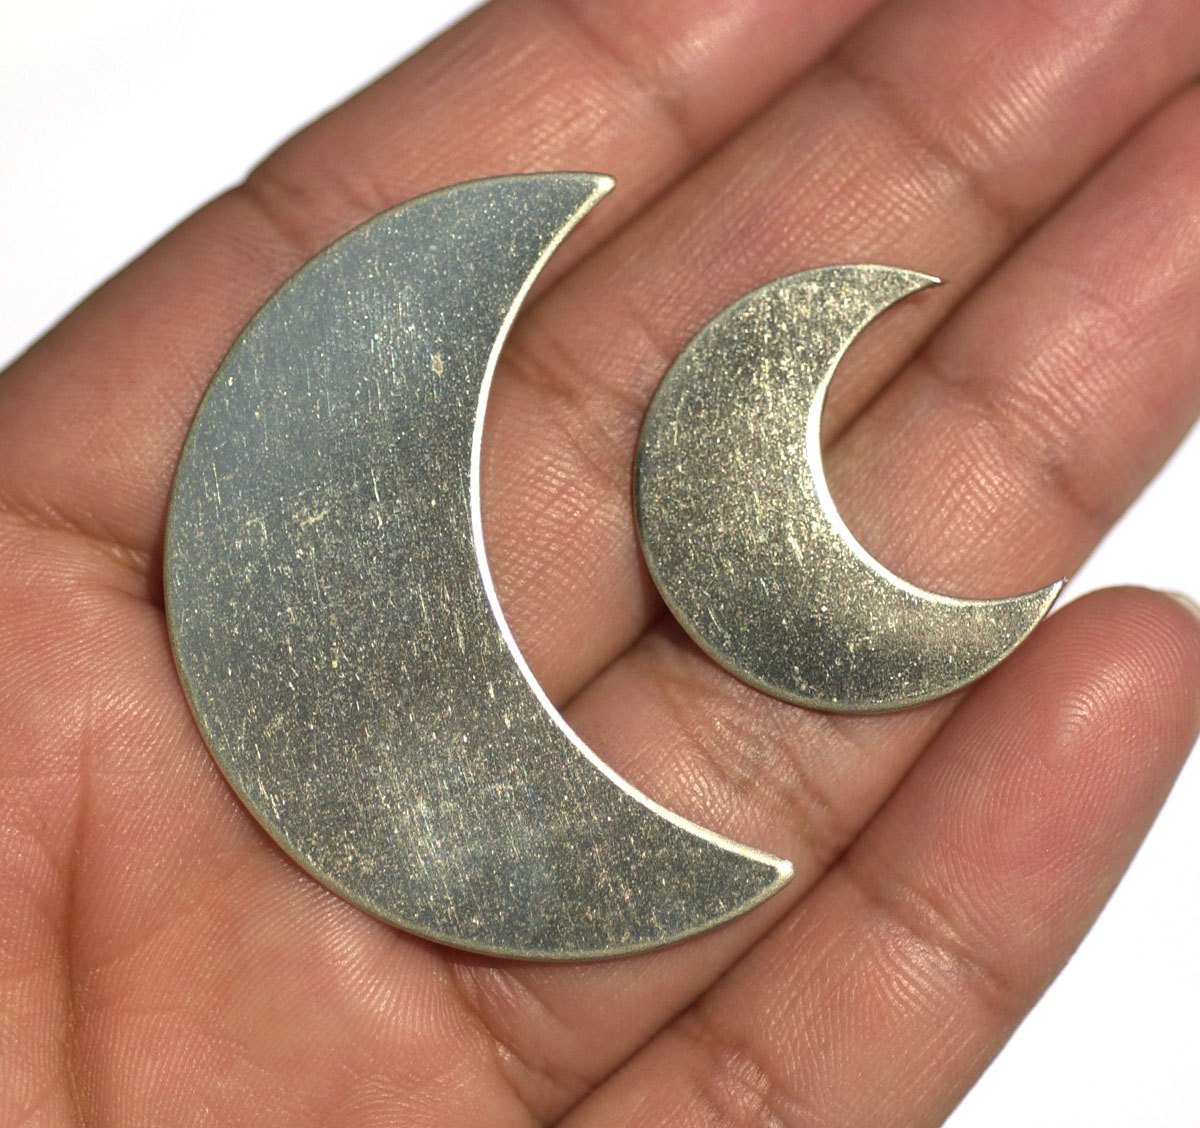 Buy Nickel Silver Large Luna Moon 45mm x 30mm 22g Metal Blanks Form Shape Charms for Texturing Soldering Jewelry Making Blank - 2 pieces online